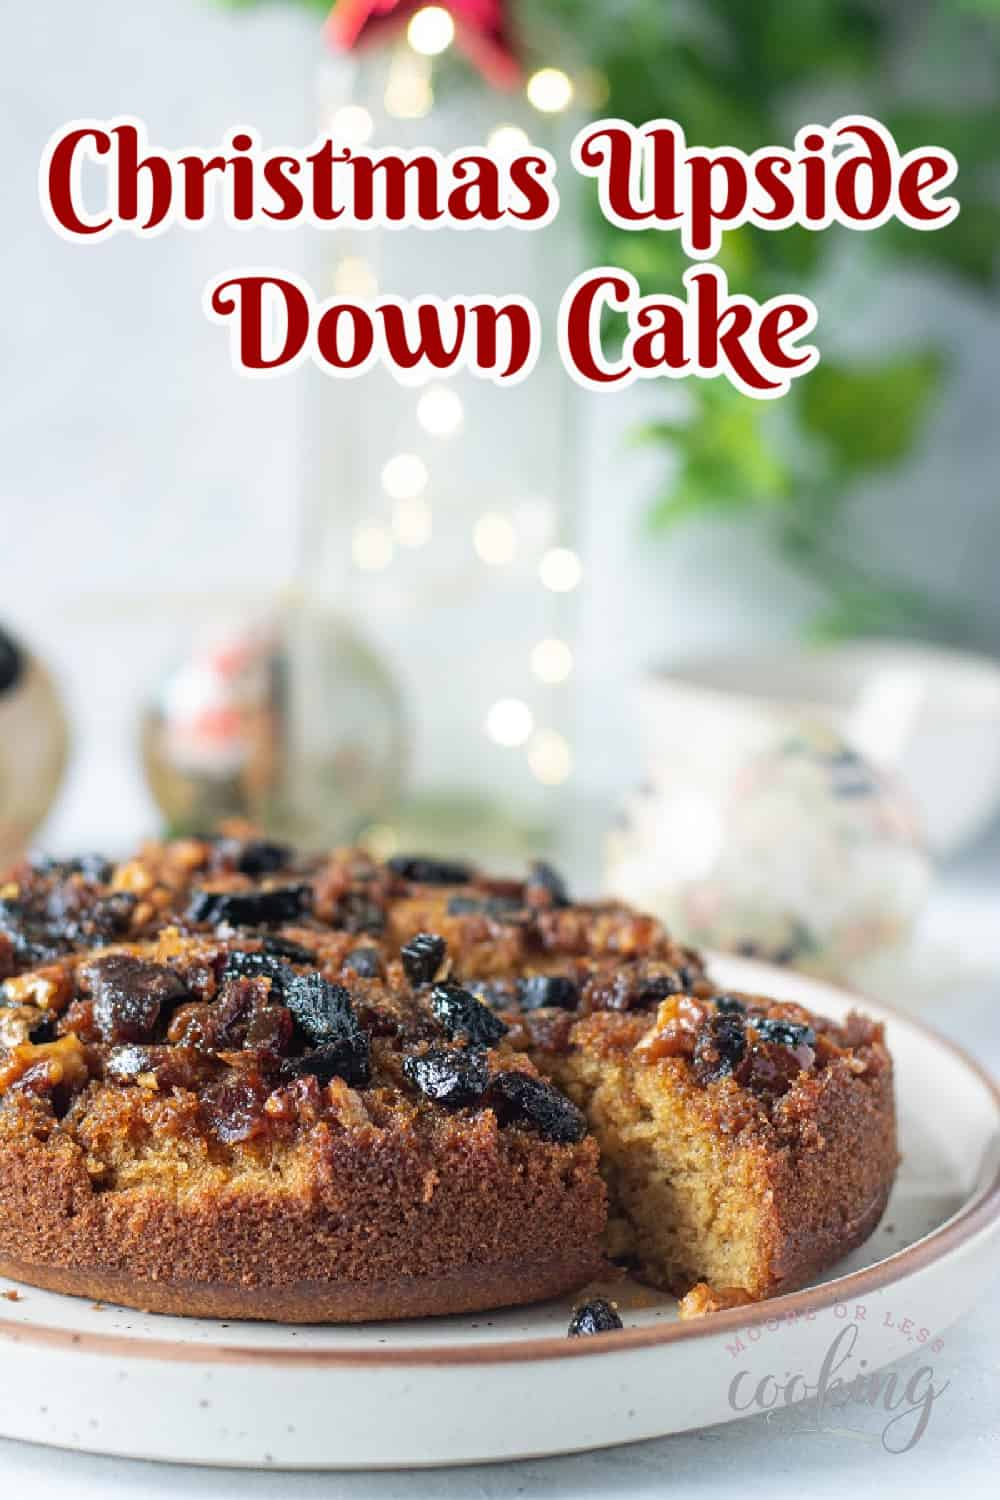 This festive upside-down Christmas cake makes a delicious coffee cake dessert. Spiced with a cinnamon, nutmeg, and cloves batter, this cake features a fruit and nut topping that's a perfect pairing for this delectable holiday dessert. via @Mooreorlesscook